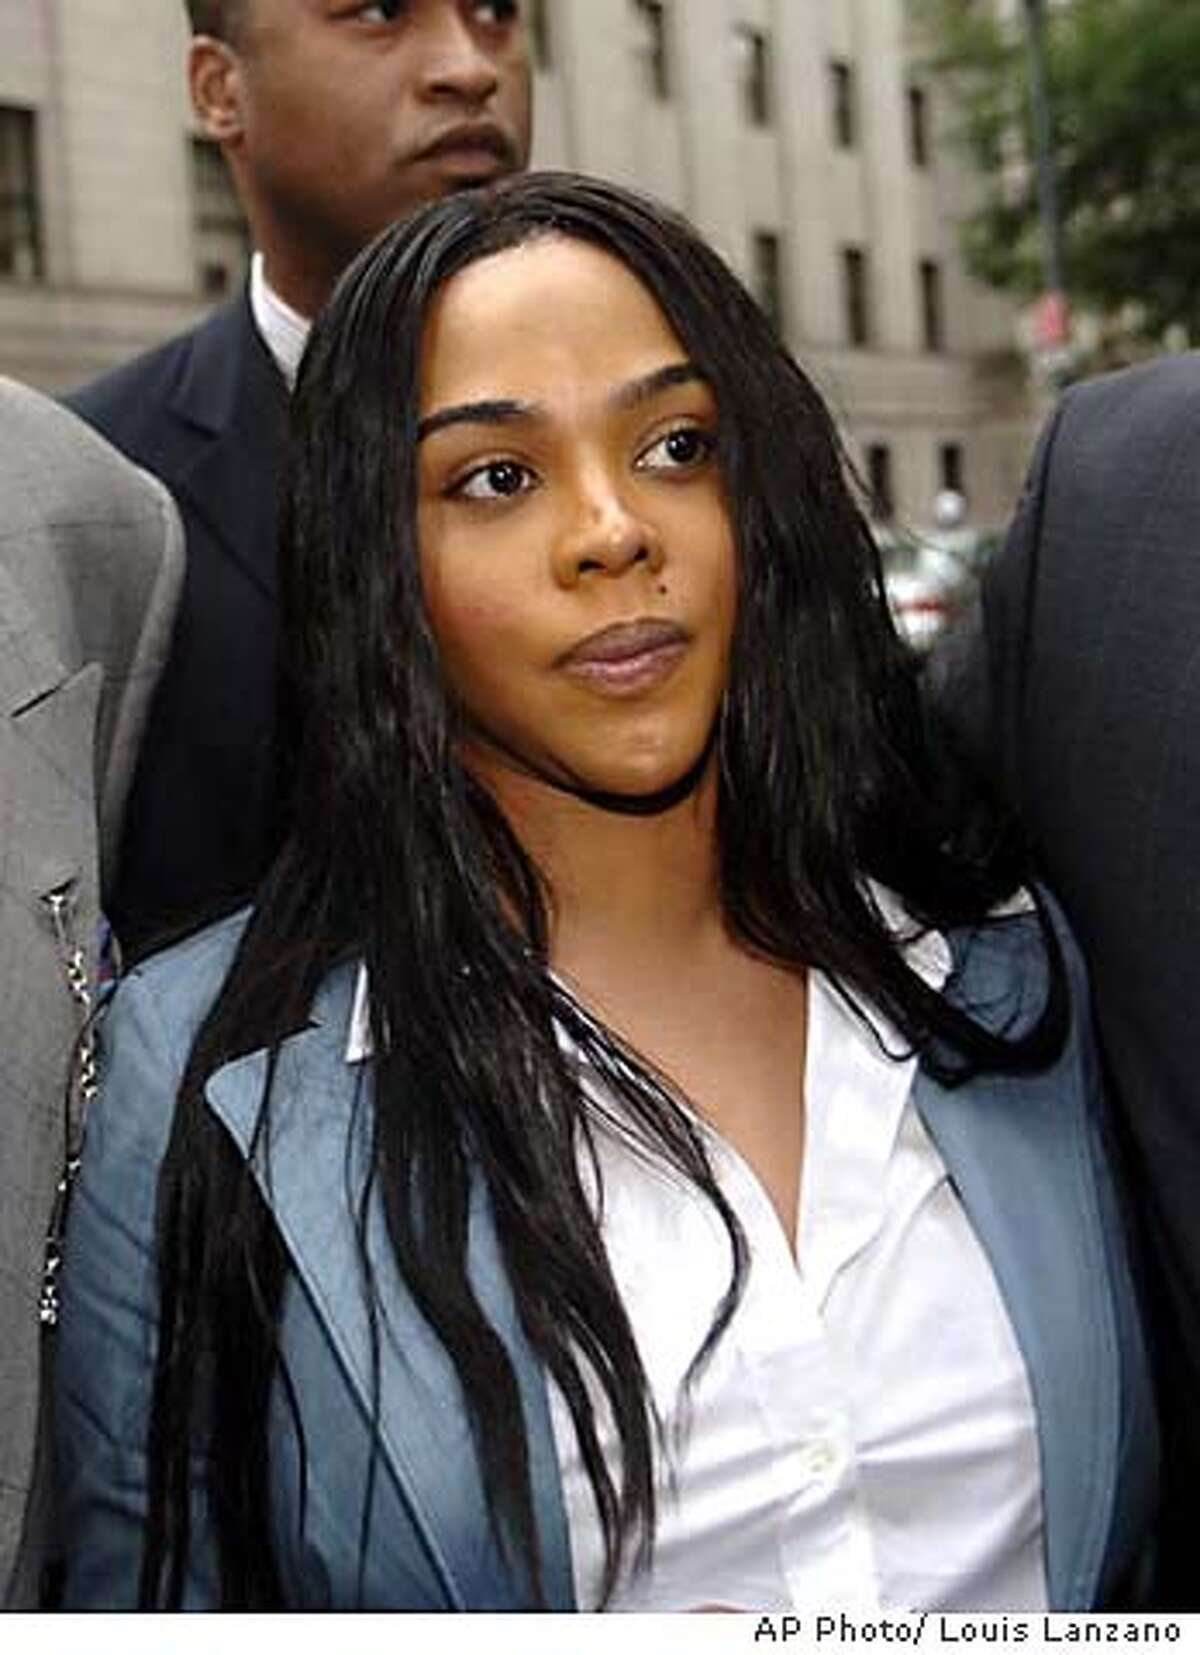 Lil' Kim whose real name is Kimberly Jones exits Manhattan federal court following her sentencing, Wednesday, July 5, 2005, in New York. Kim was given a one year and one day sentence and a $50,000 fine for lying to the grand jury in connection with a shootout outside a Manhattan radio station in 2001. (AP Photo/ Louis Lanzano)